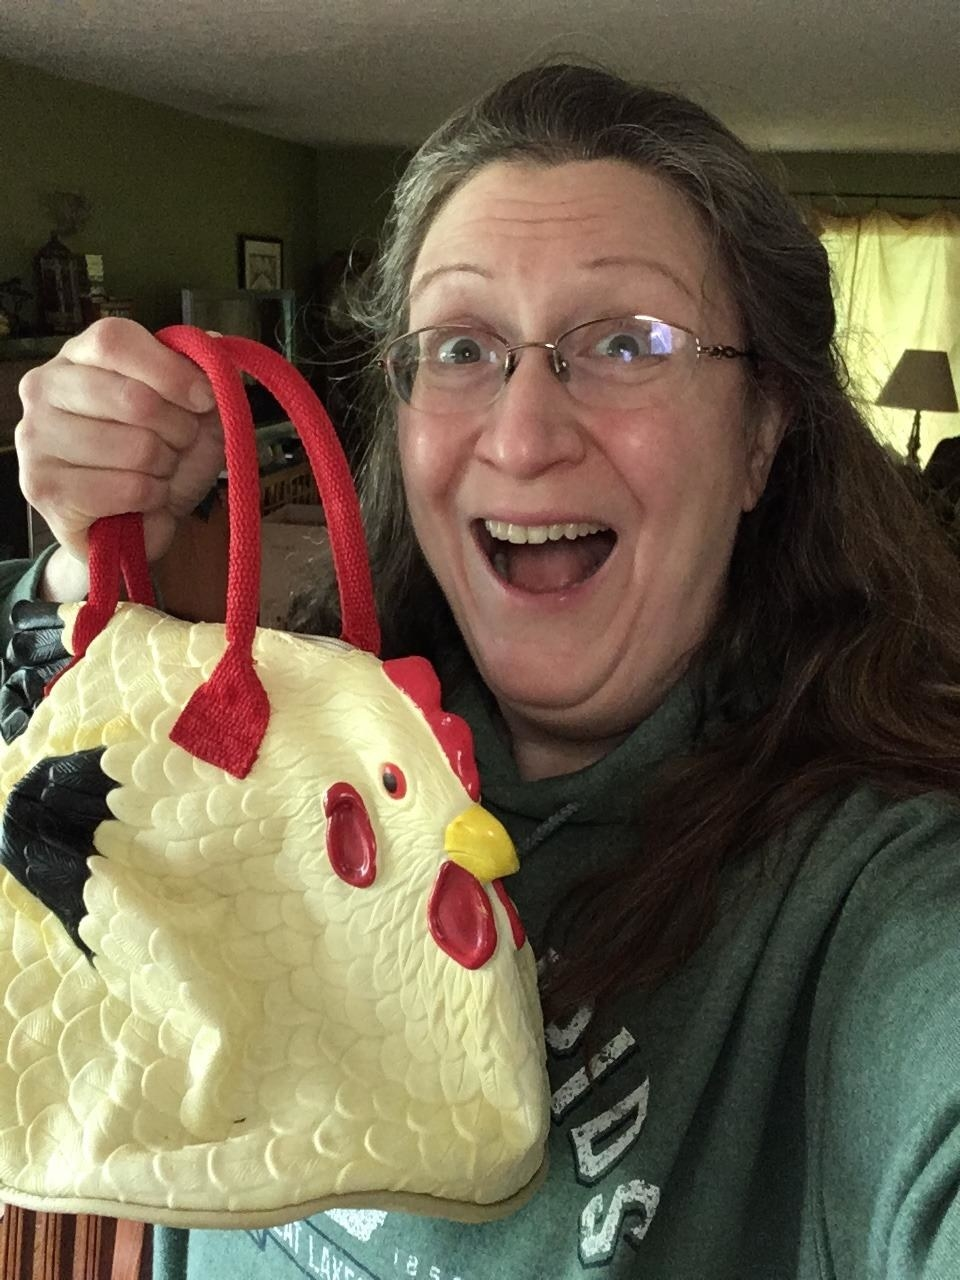 reviewer grins holds chicken purse made out of plastic or rubber